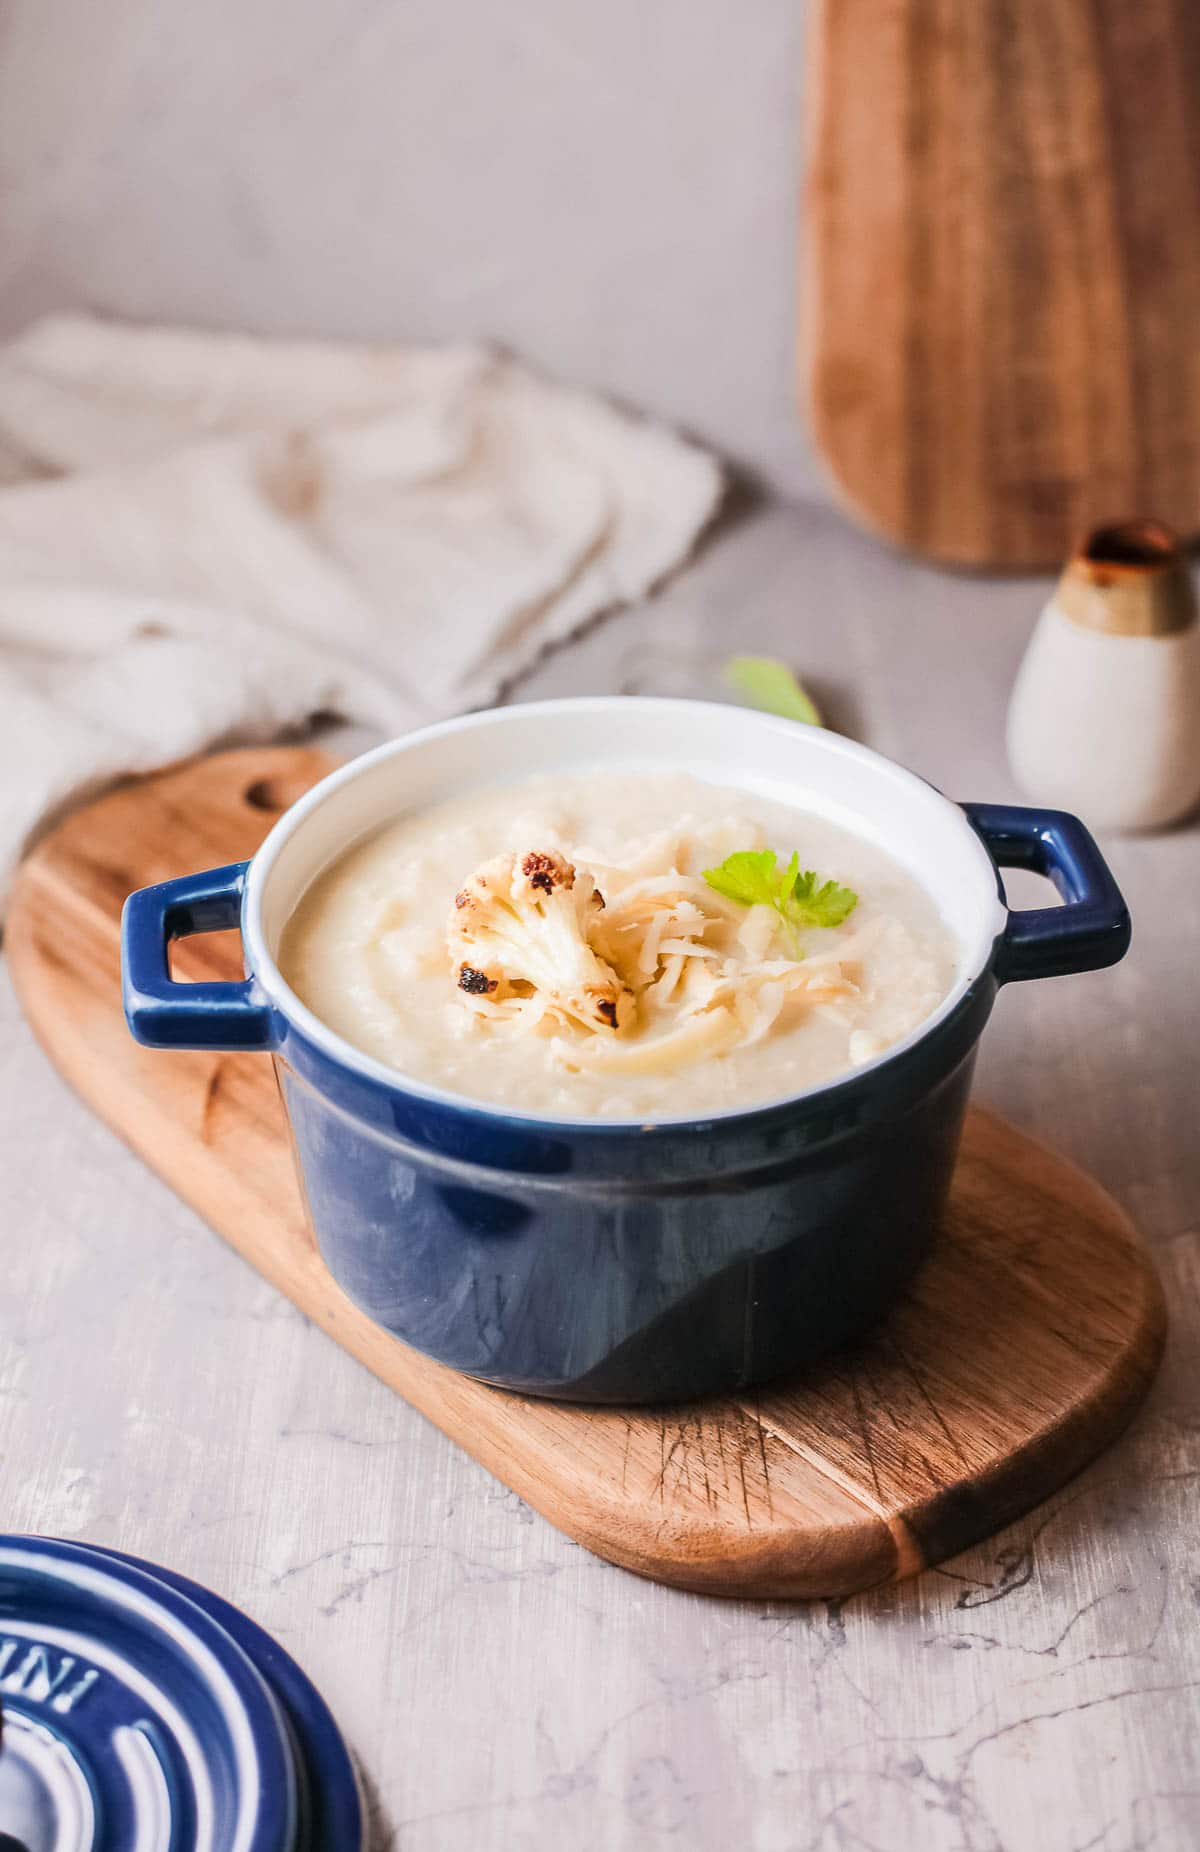 Cauliflower Cheese soup in bowl side view